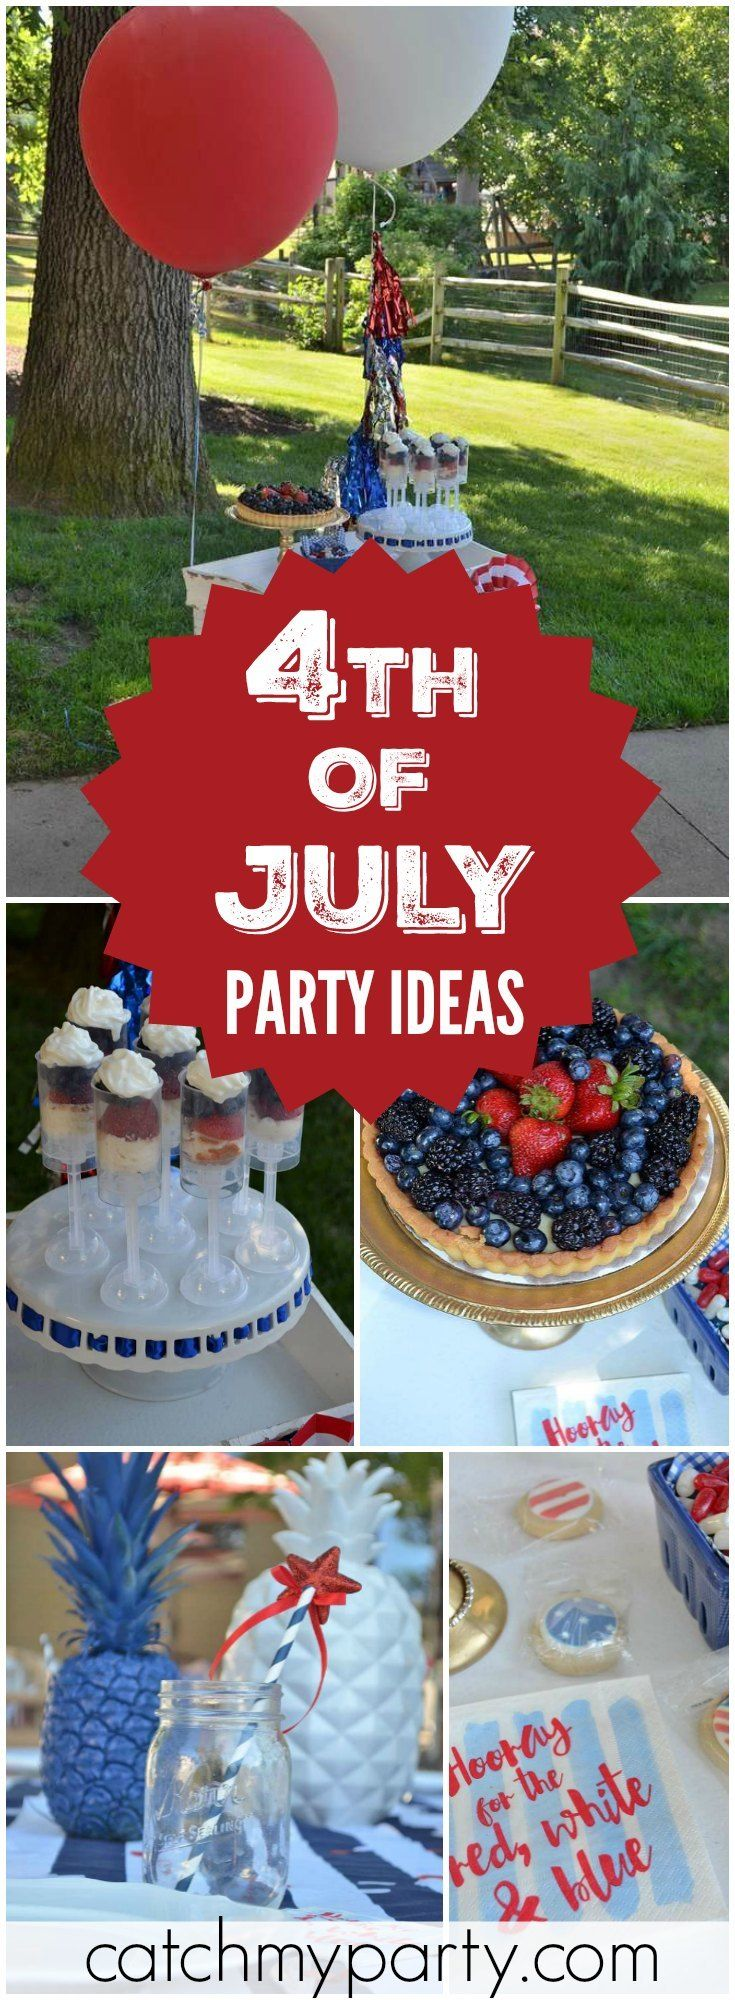 364 best images about july 4th party ideas on pinterest for 4th of july celebration ideas